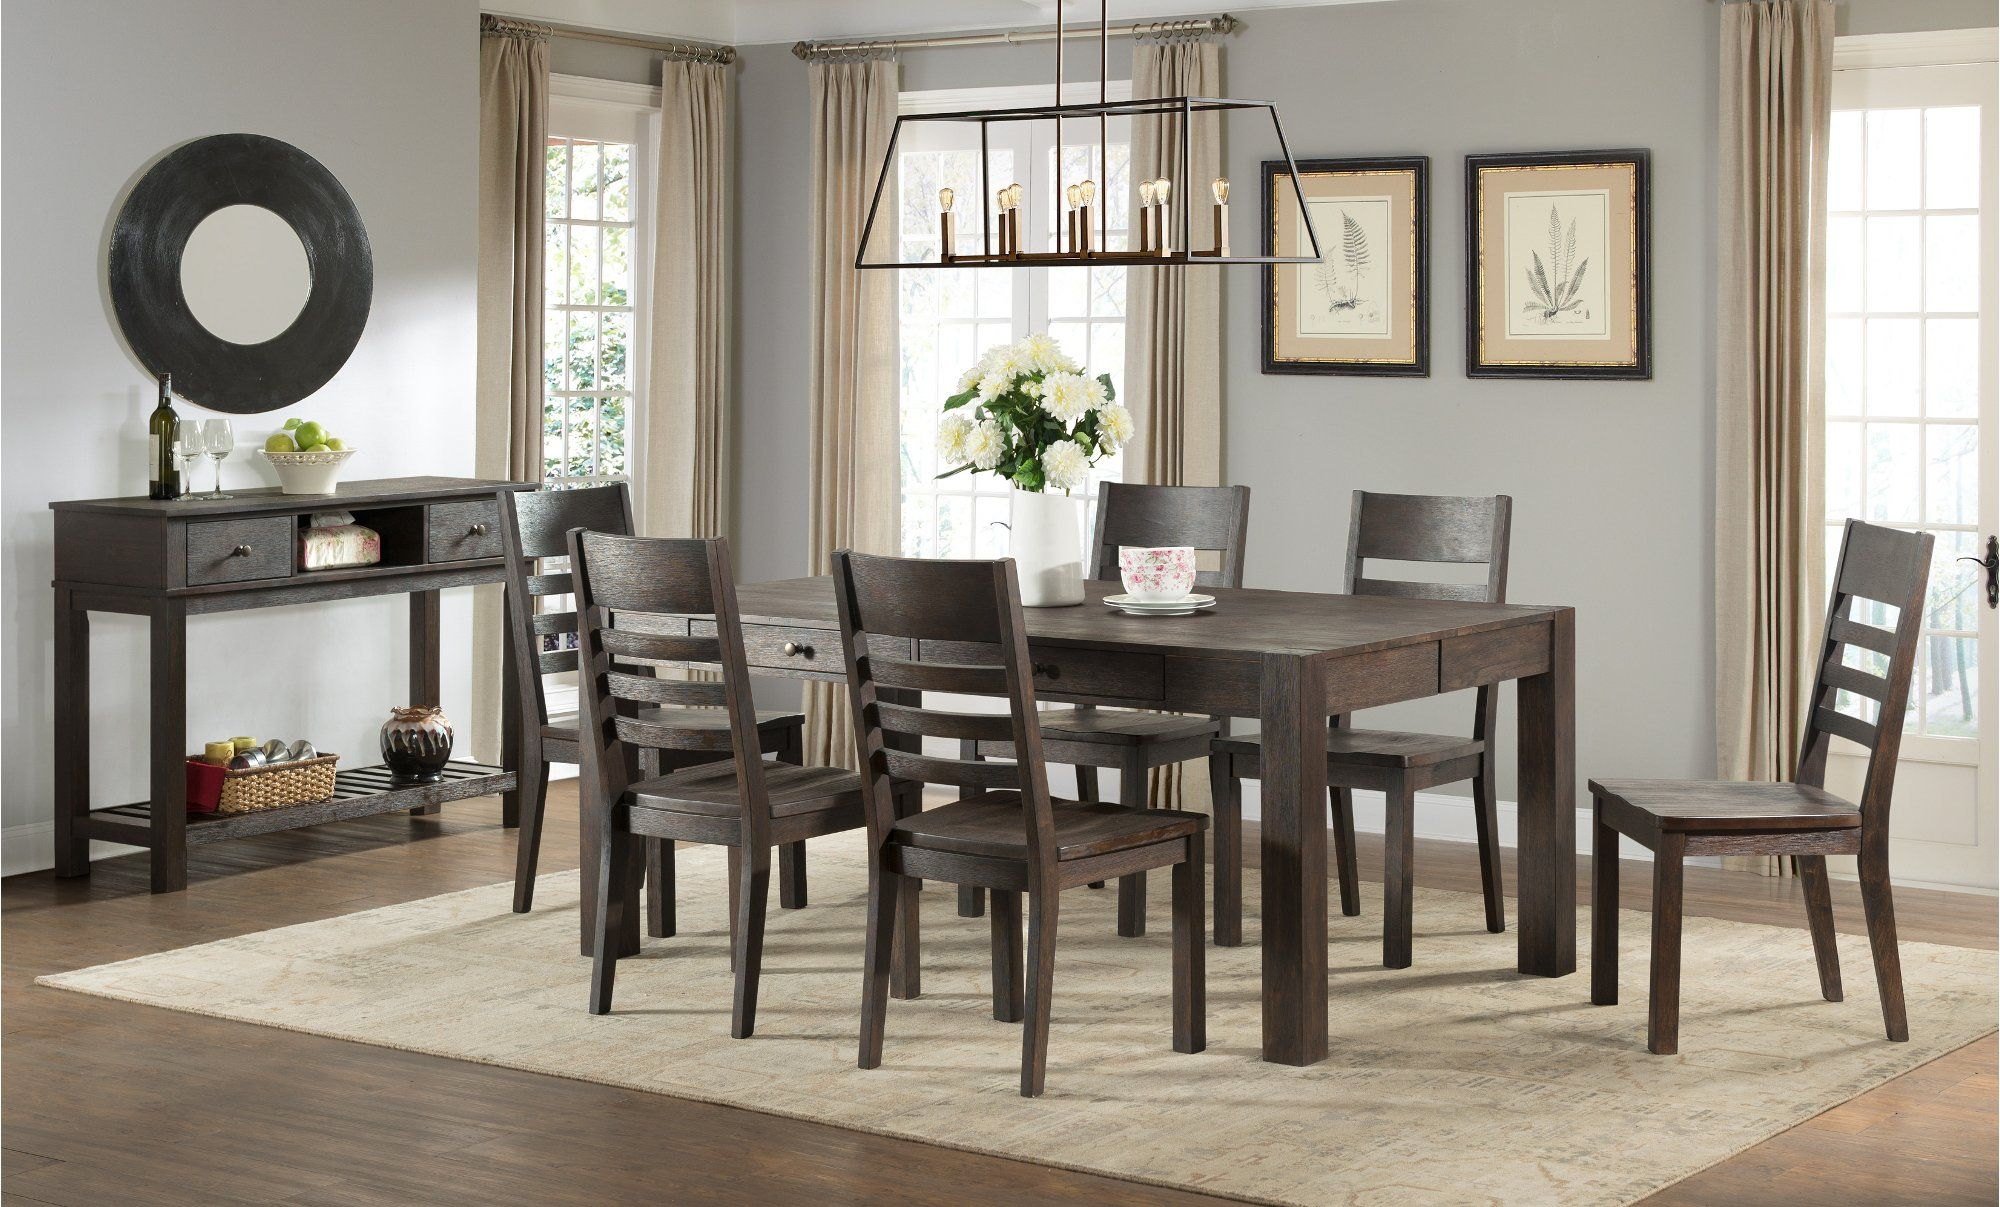 Brushed cocoa farmhouse 6 piece dining set salem in 2021